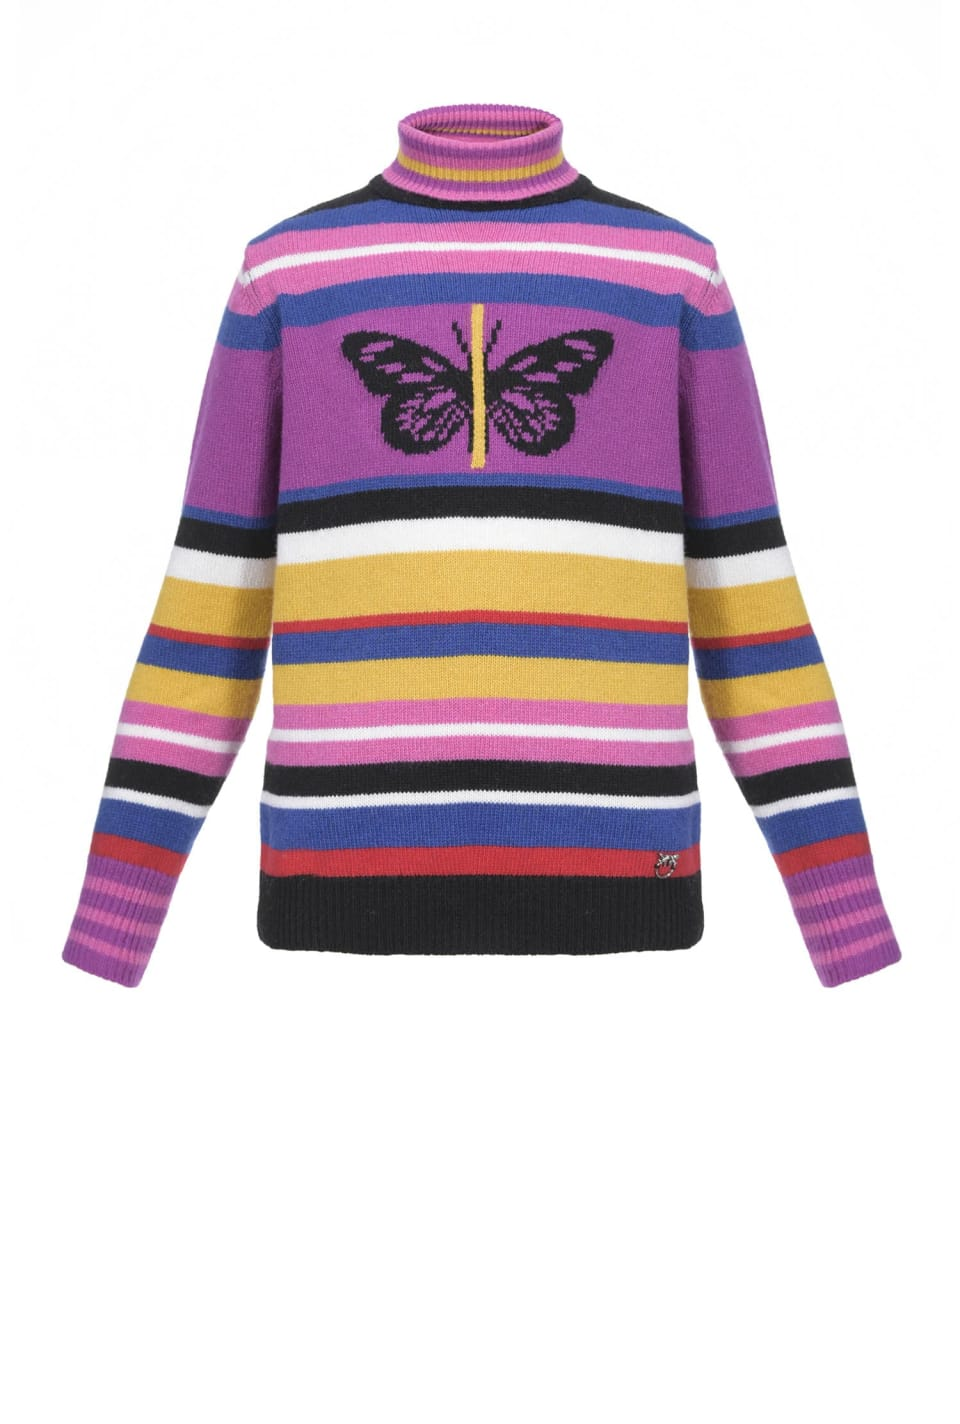 Striped turtleneck sweater with butterfly